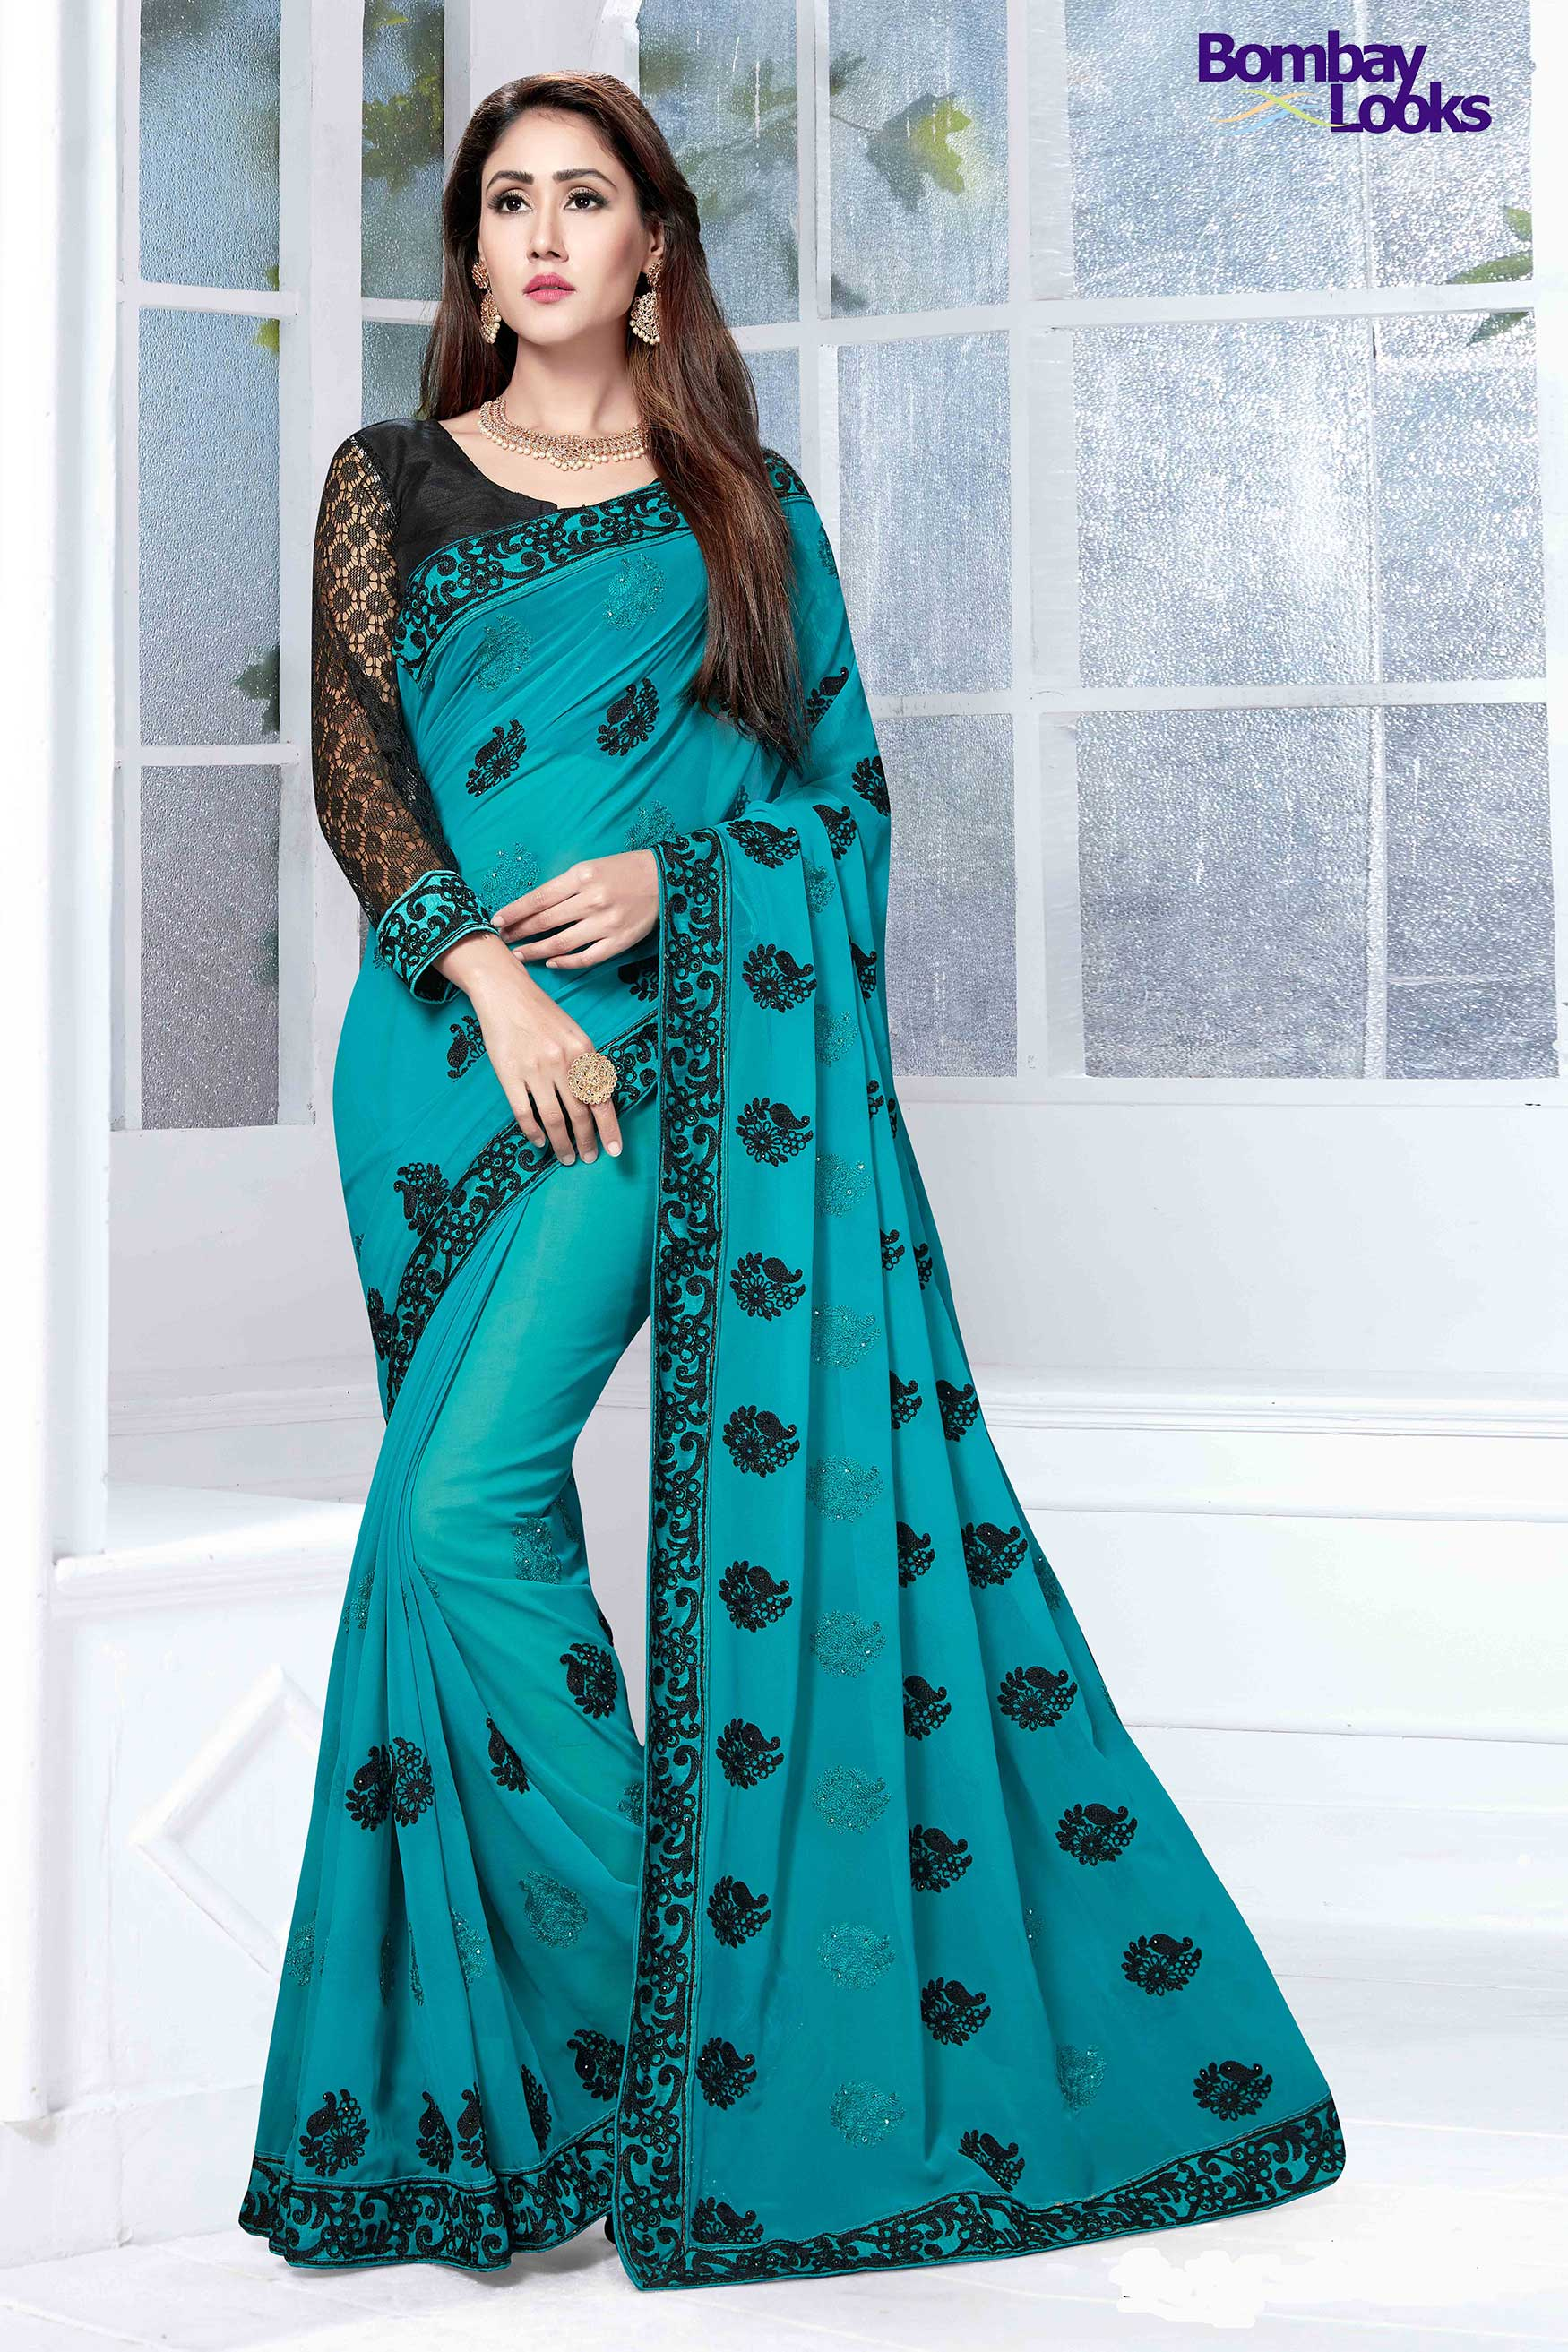 Teal jade Georgette saree with resham embroidery